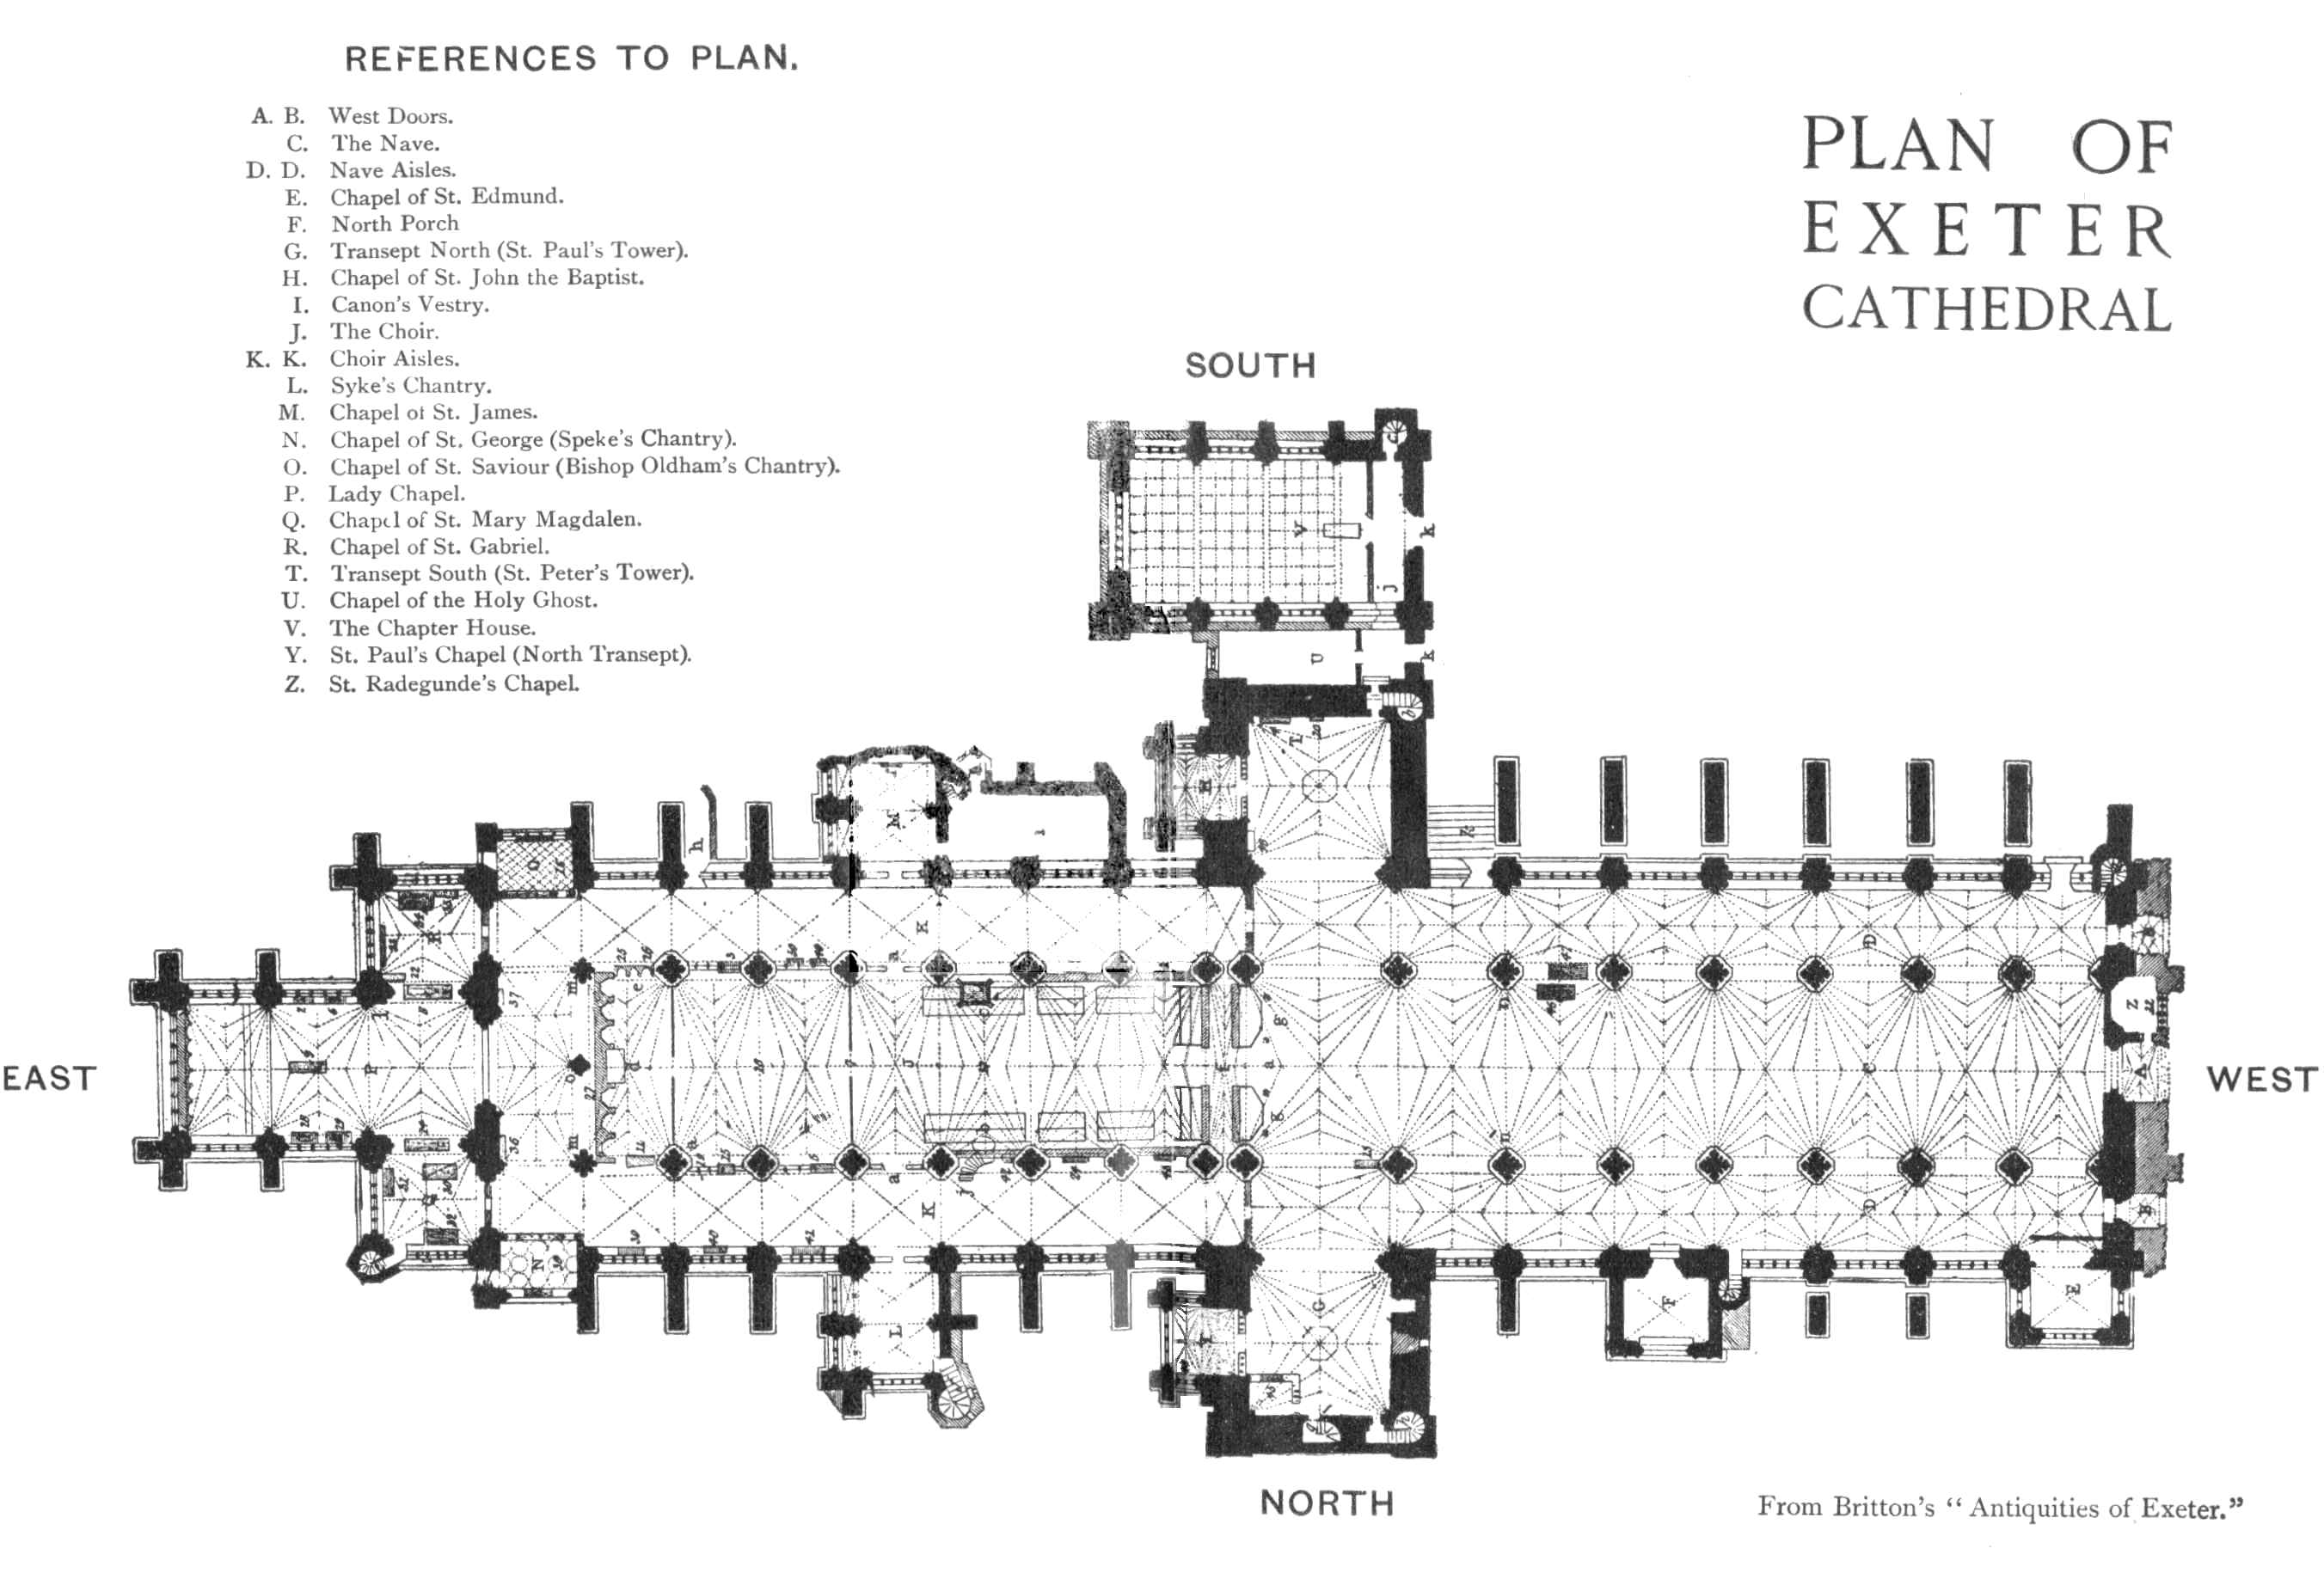 Plan of Exeter Cathedral